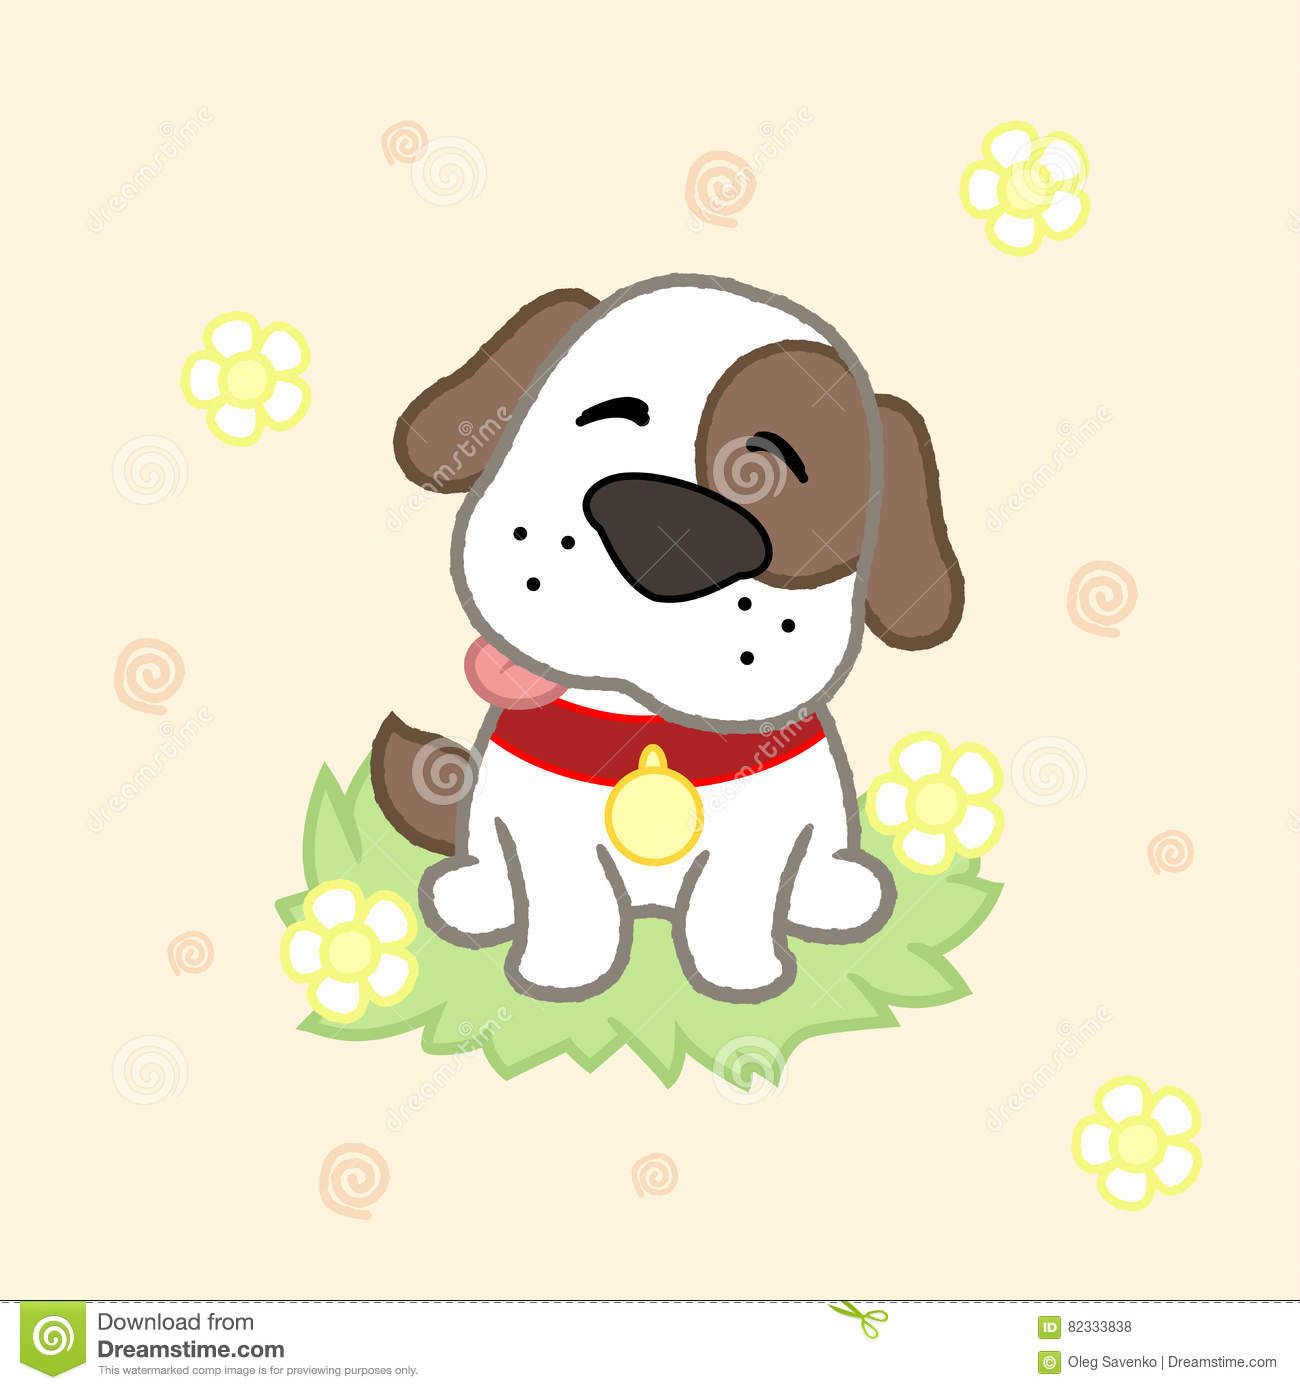 puppy drawing. Cute puppy  drawing for kids Vector illustration Puppy Drawing For Kids Illustration Stock